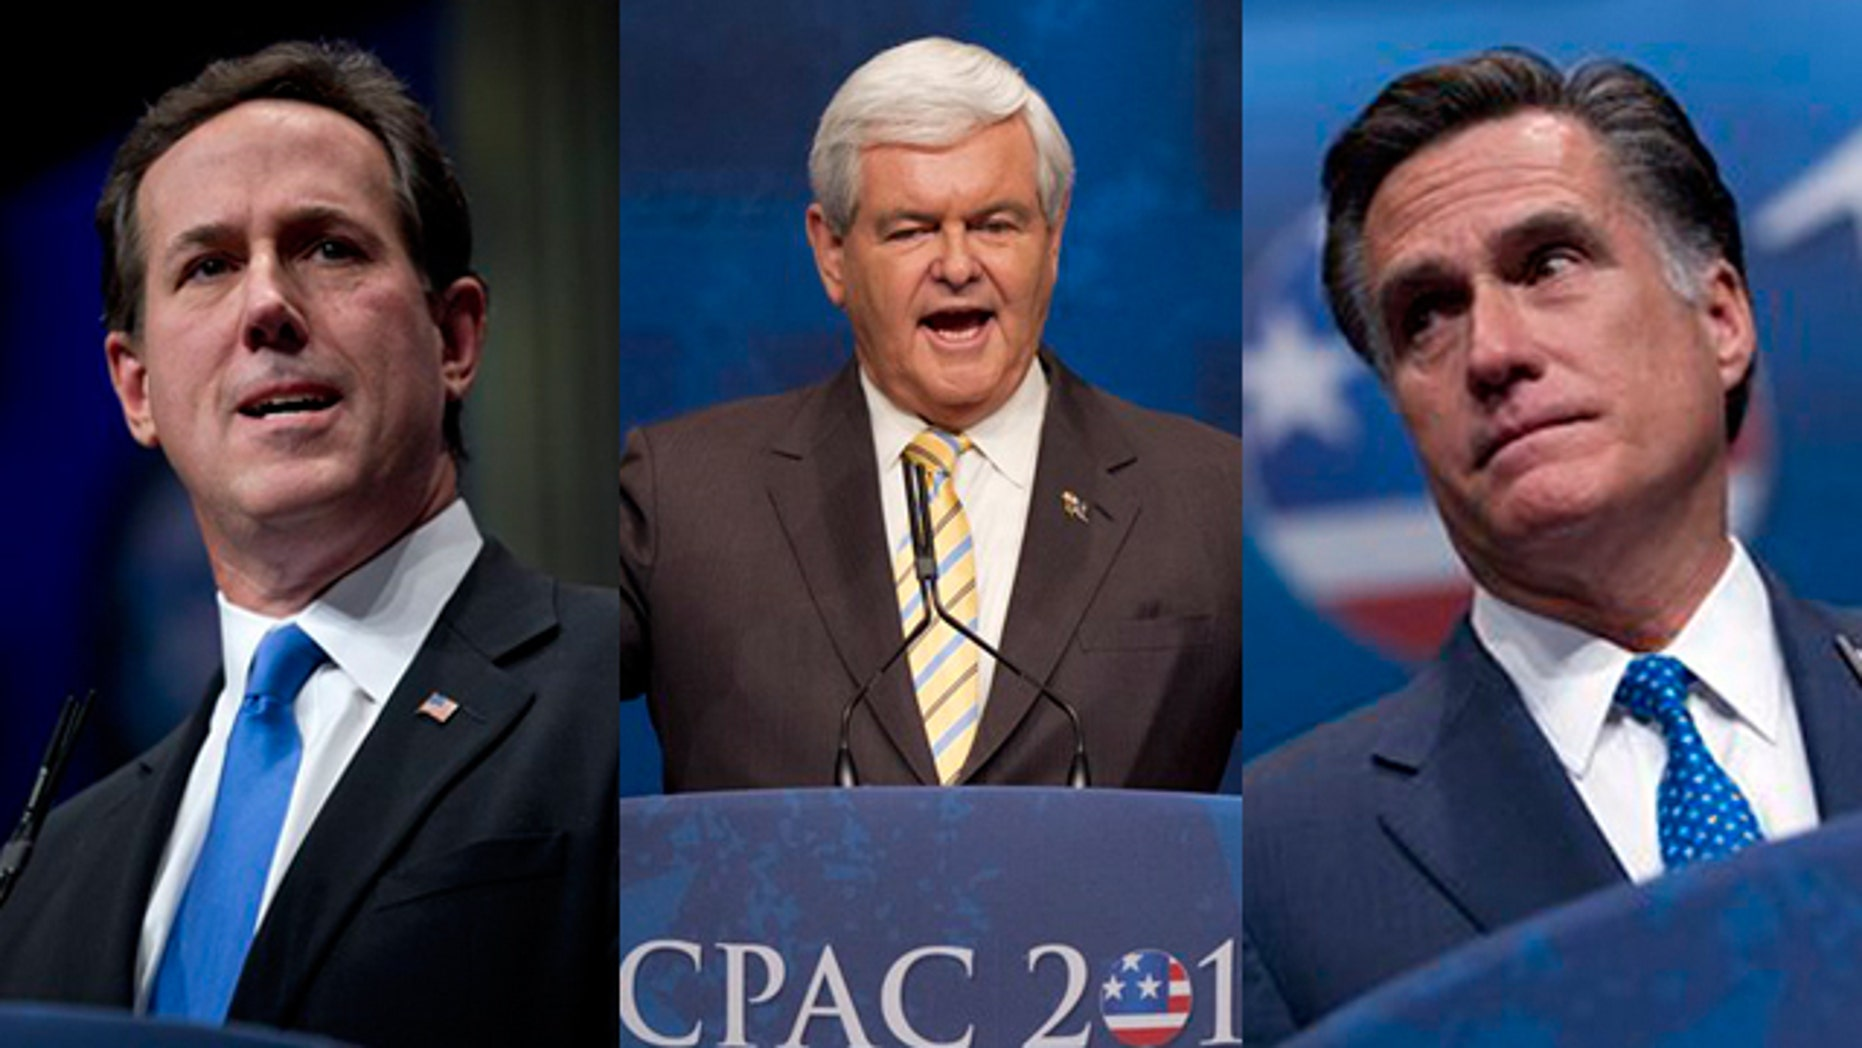 Feb. 10, 2012: Rick Santorum, Newt Gingrich and Mitt Romney speak at the Conservative Political Action Conference in Washington, D.C.